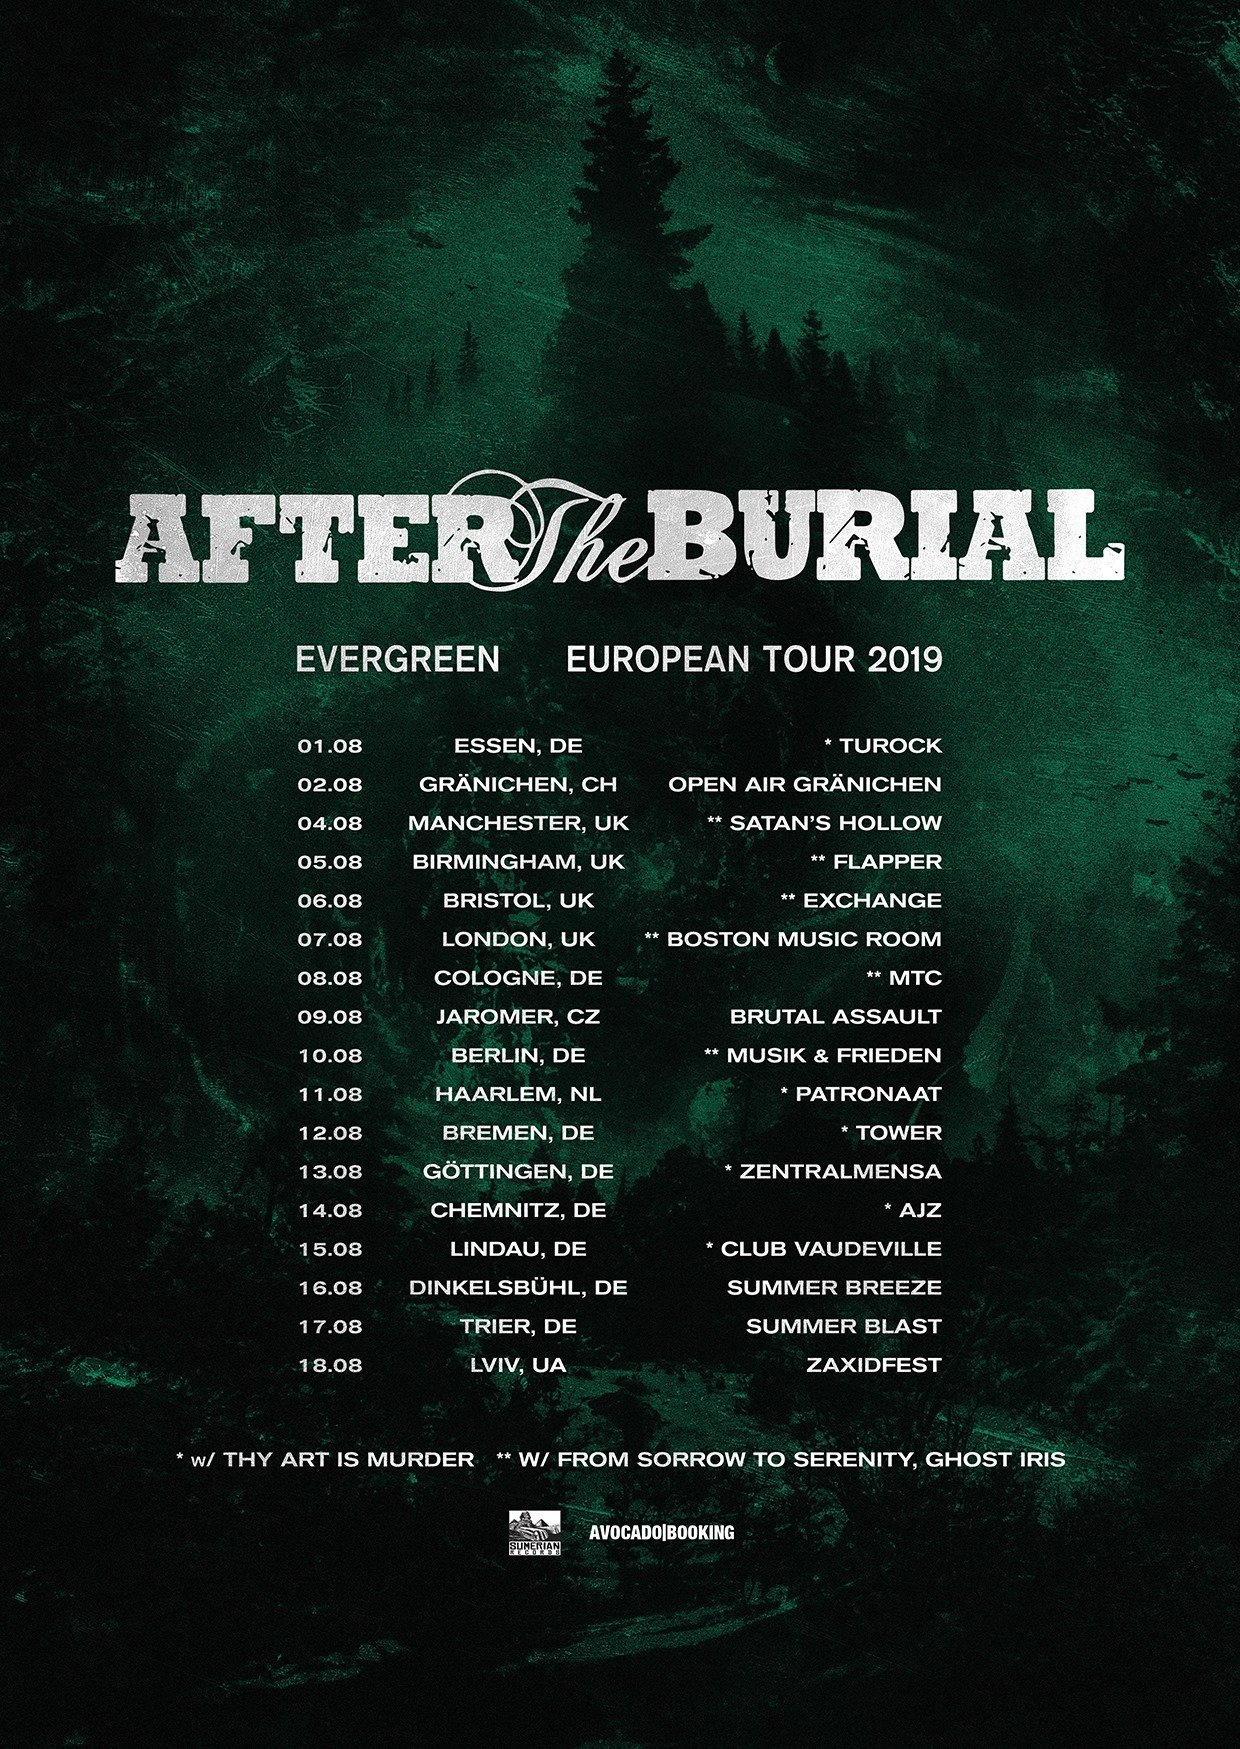 After The Burial - Evergreen European Tour 2019